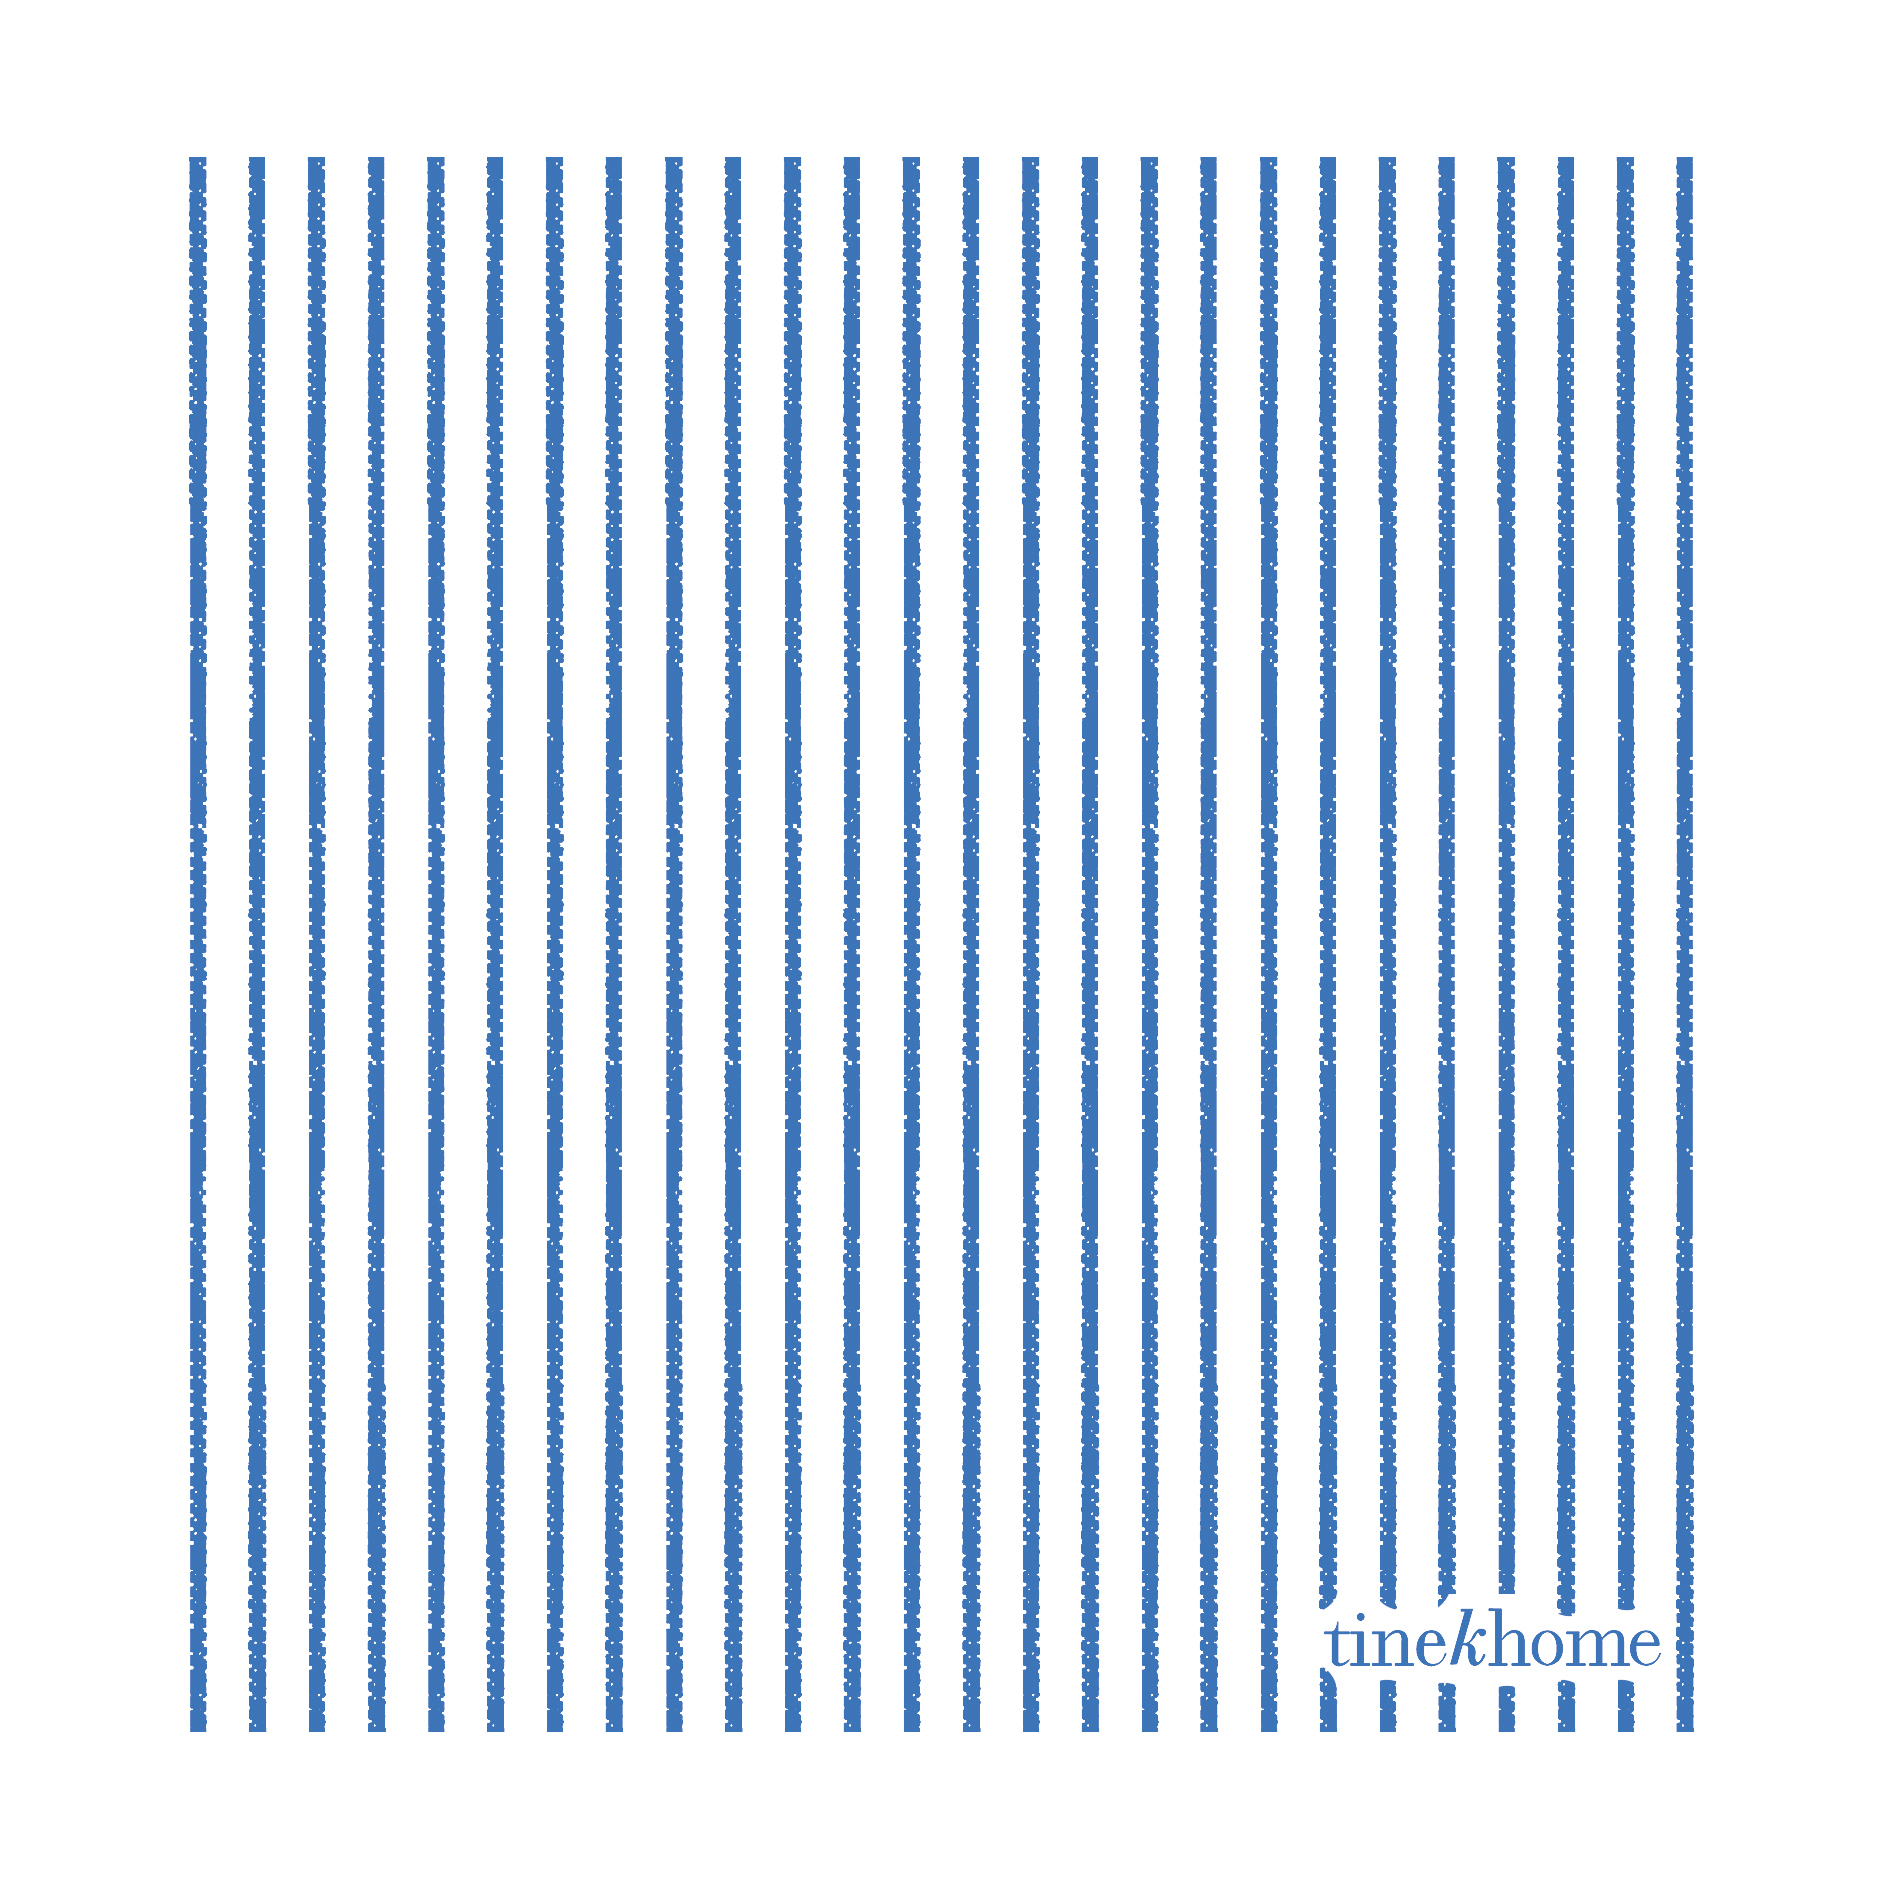 striped paper napkins Cactus large paper napkins coming soon slant collections foil gold frenchie metallic striped napkins coming soon meri meri kitty cat napkins $700.